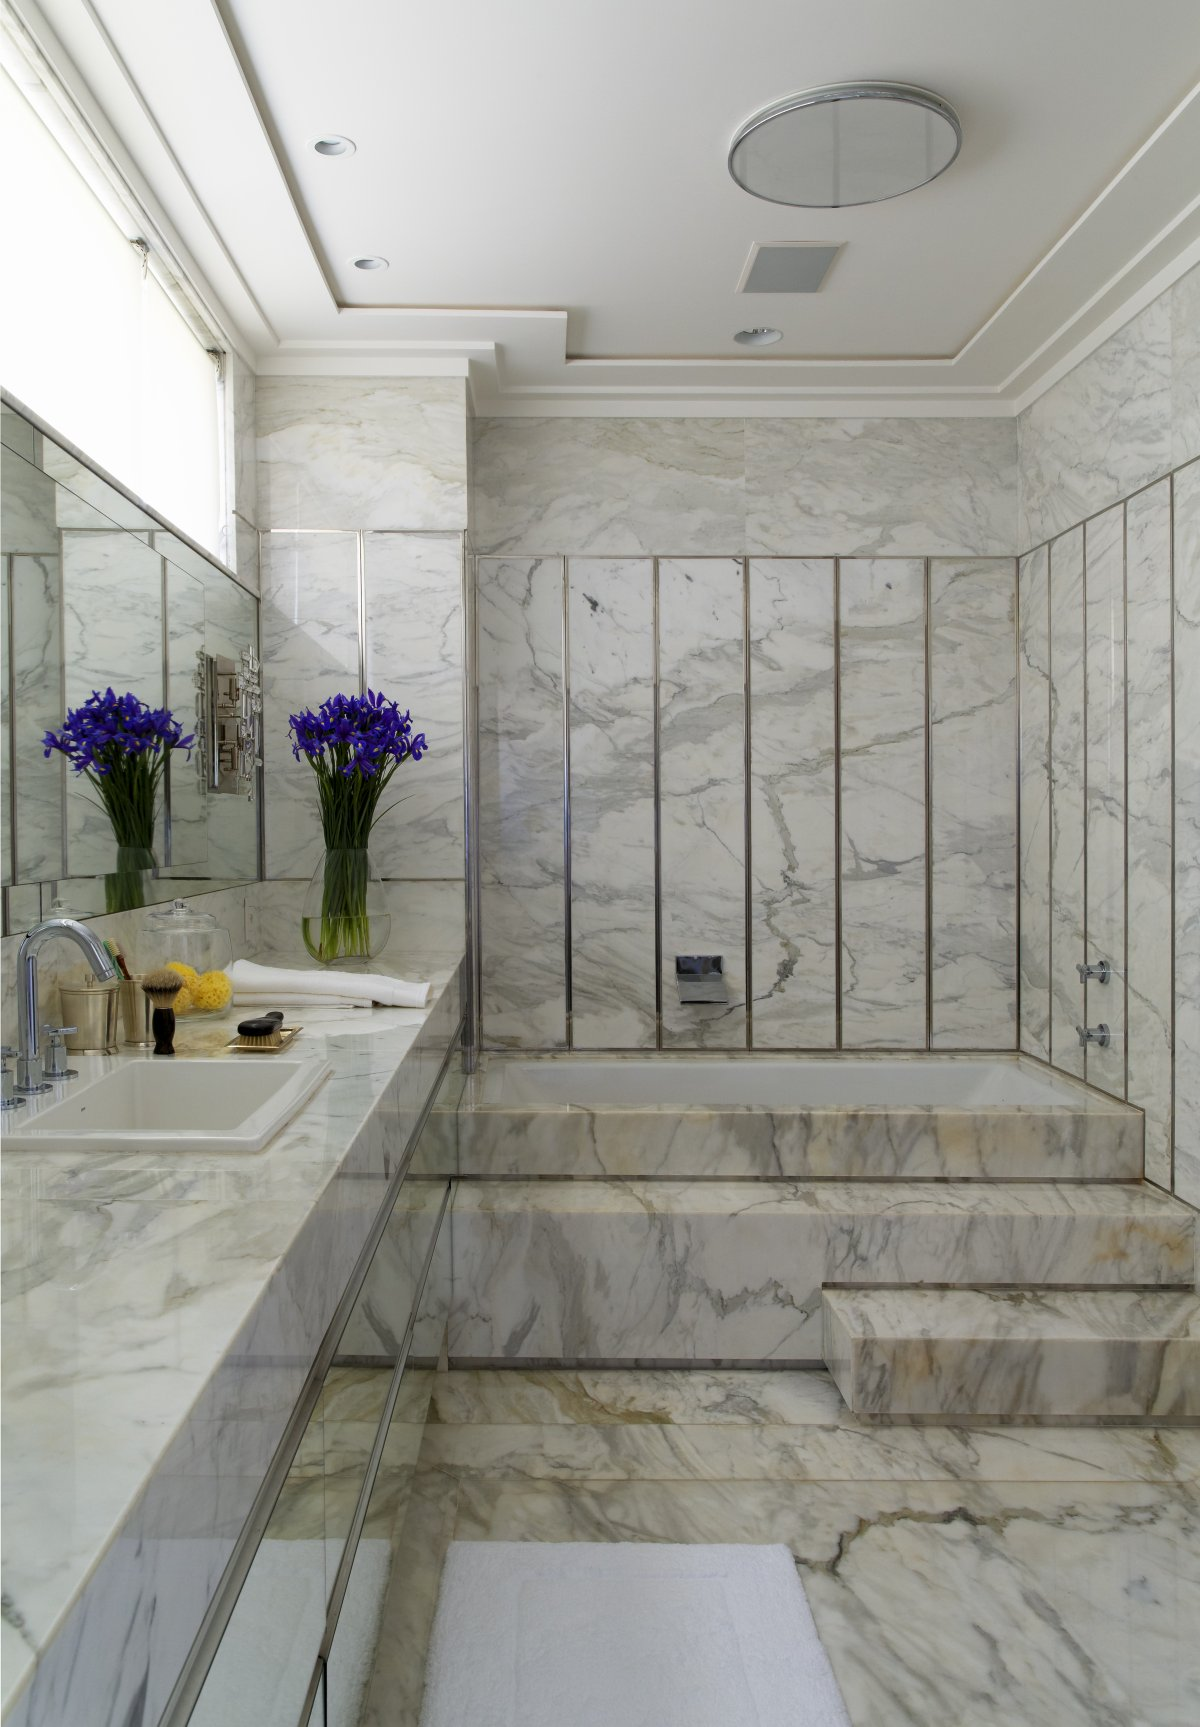 bathroom-high-end-bathroom-designs-with-elegant-bathroom-design-also-oval-white-ceramic-bathtub-with-white-marble-tub-platform-and-square-white-ceramic-sink-high-end-bathroom-designs